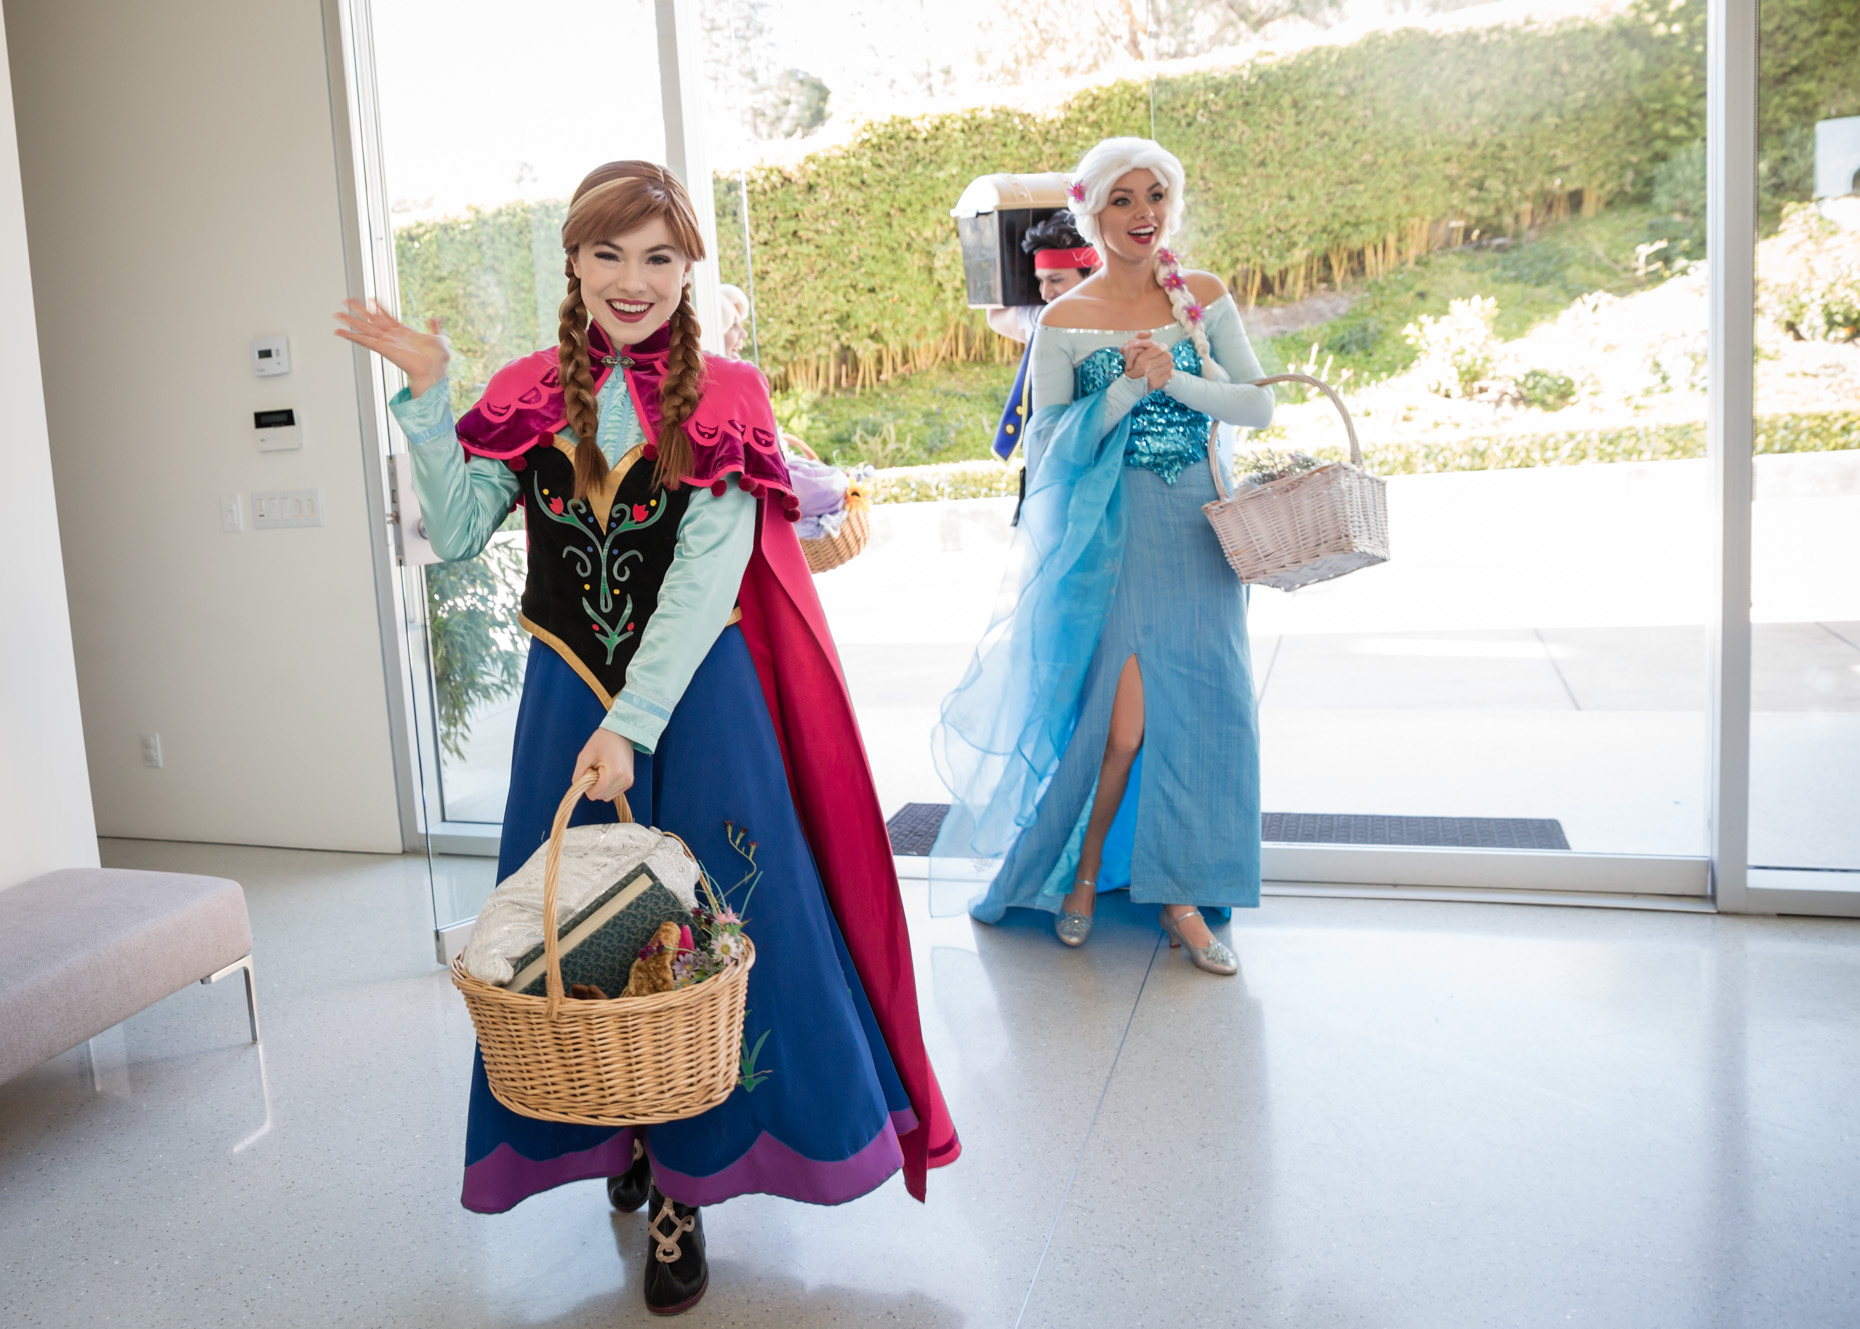 princess anna queen elsa make entrance at beverly hills party.jpg